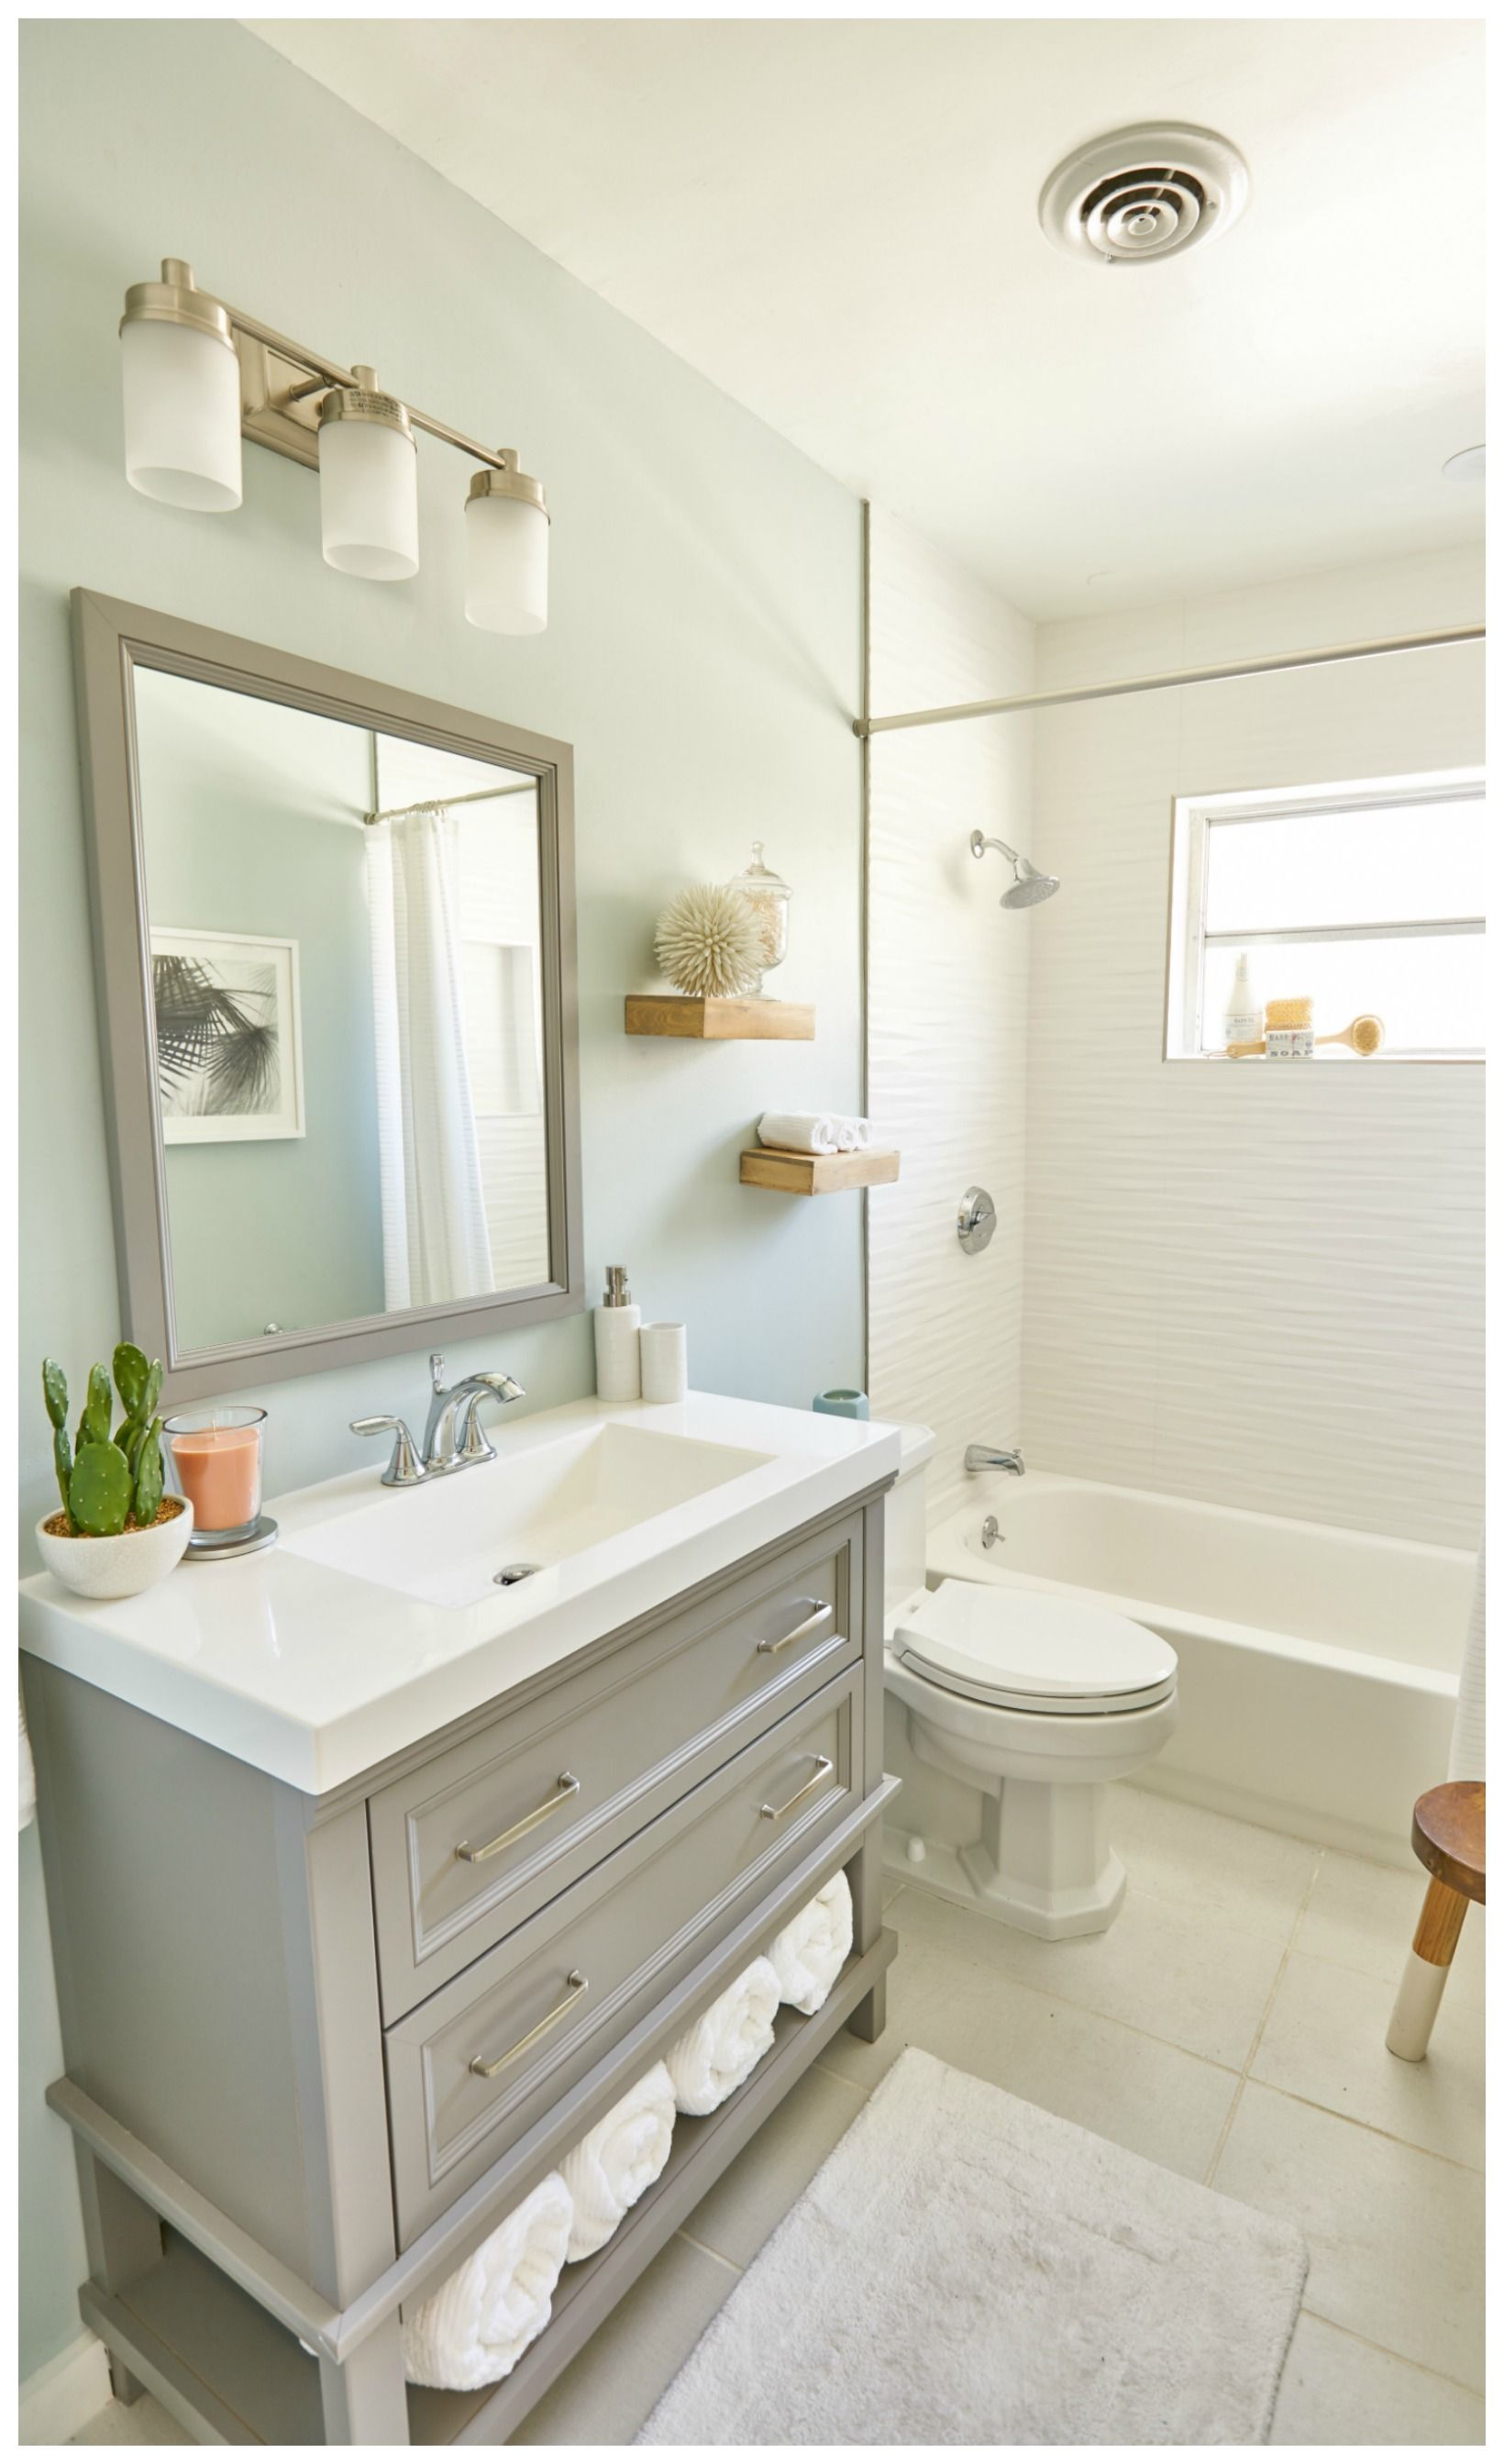 8 Ways to Make a Small Bathroom Look Bigger #smallbathroomremodel